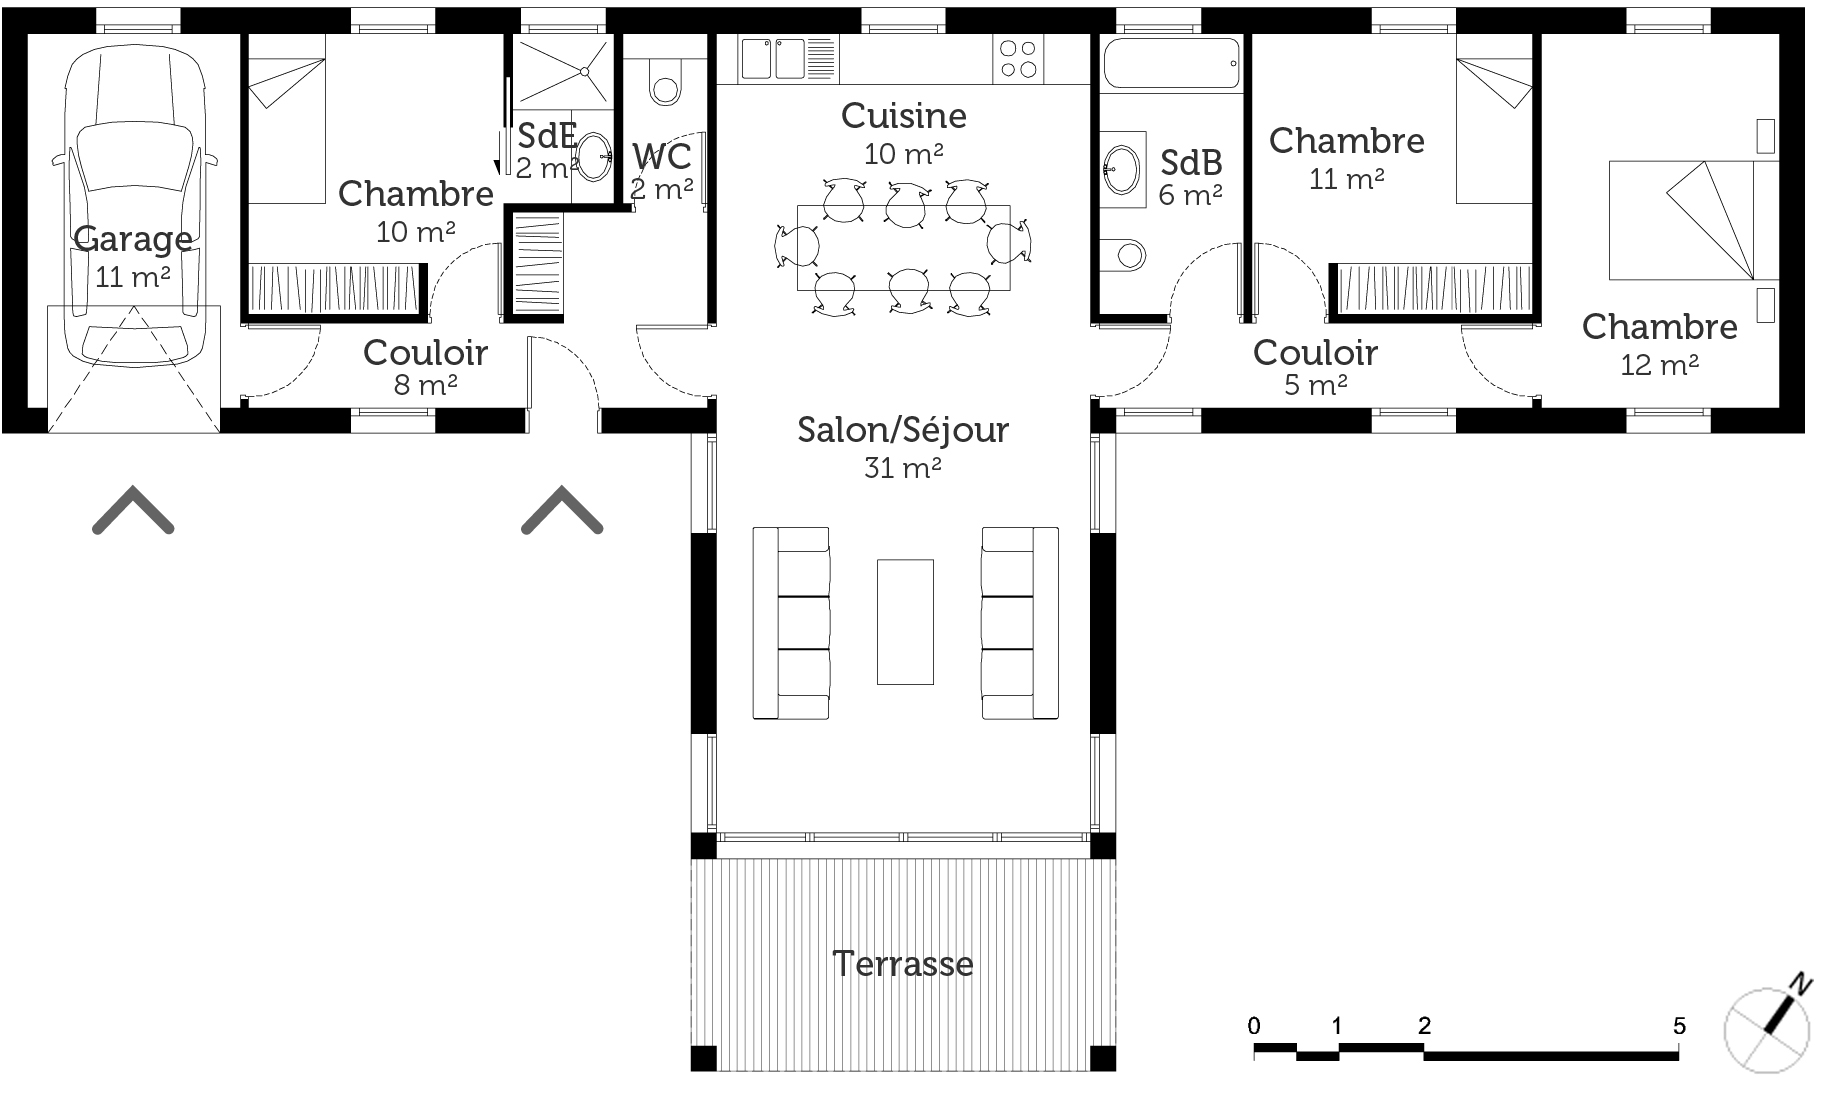 Plan maison moderne en t ooreka for Plan maison contemporaine 3 chambres